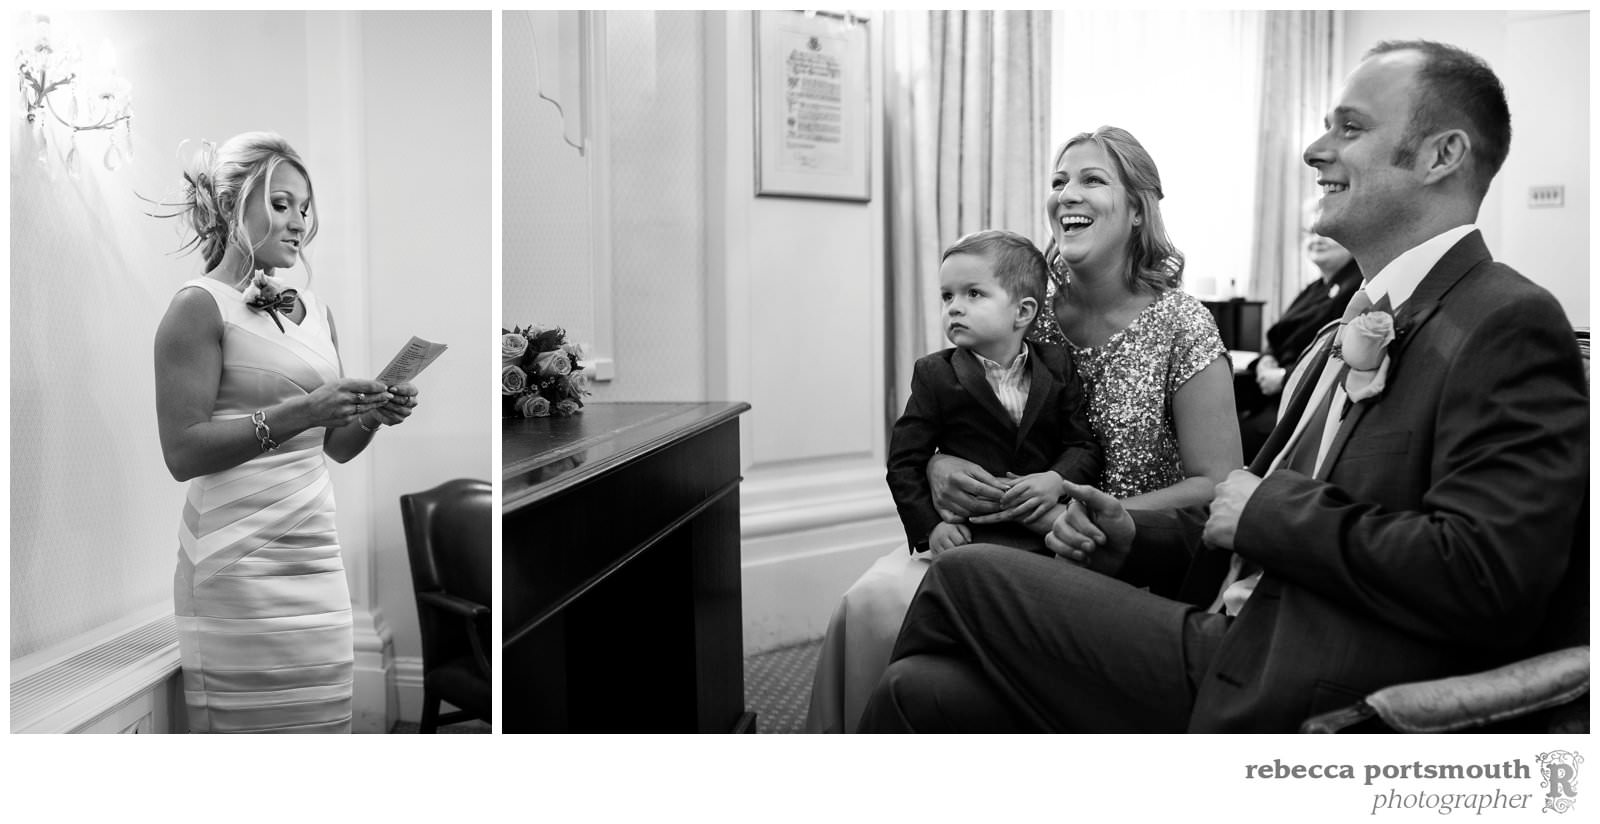 The Chelsea Registry Office wedding photos of Victoria + Dominic: - a reading by Dominic's sister and their reactions.